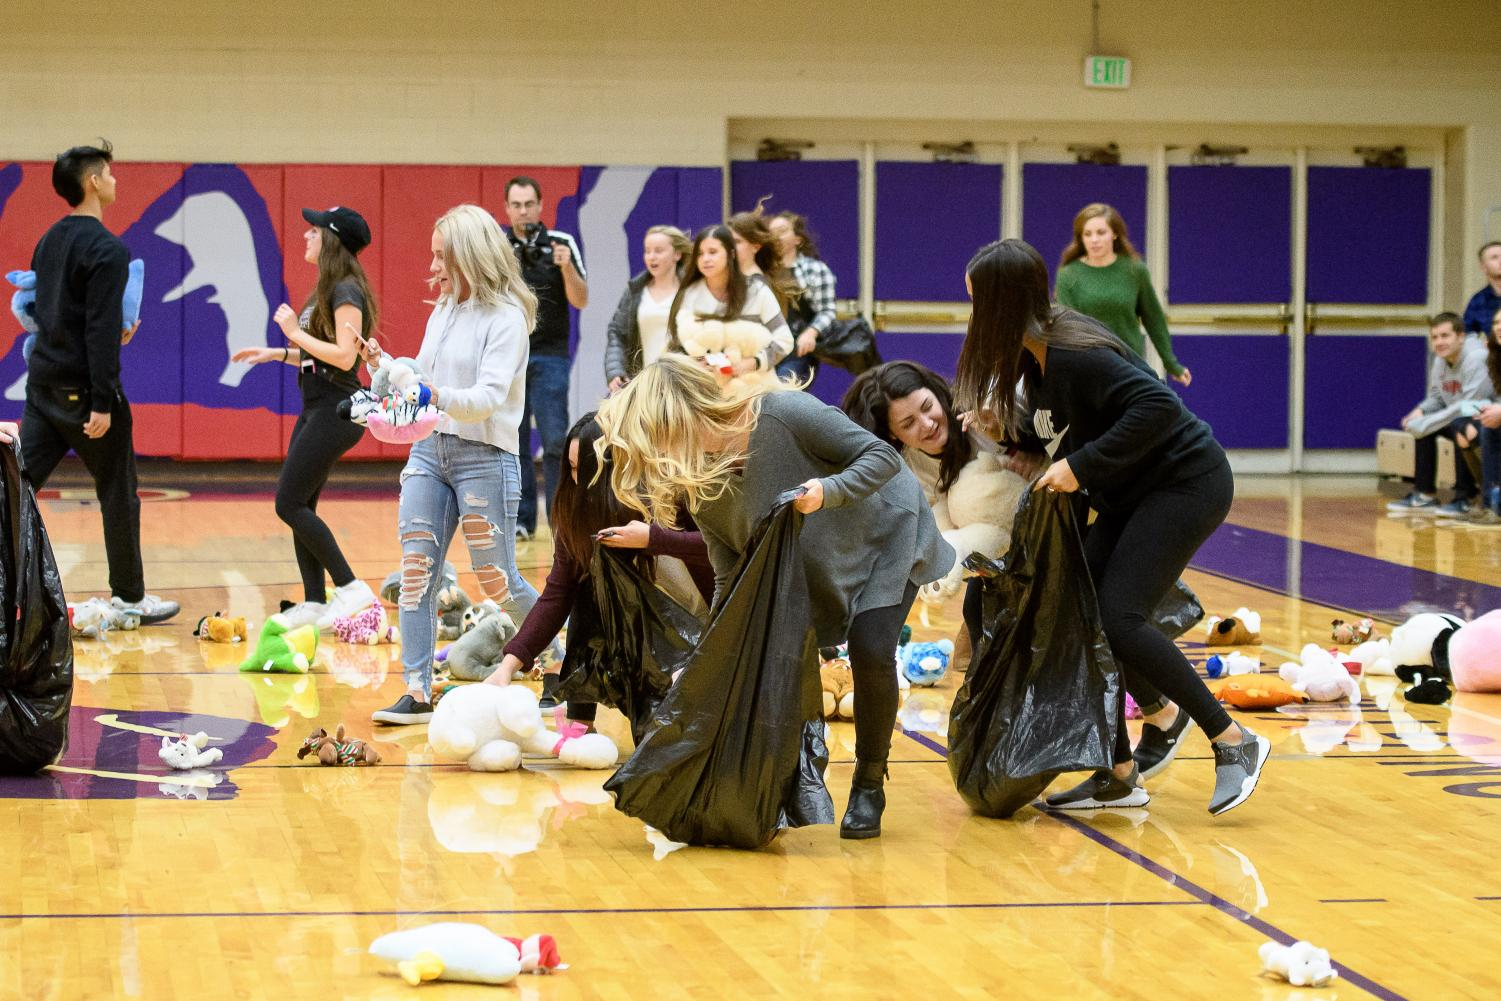 Phi Sigma Sigma member collect stuffed animals off gym floor after toss